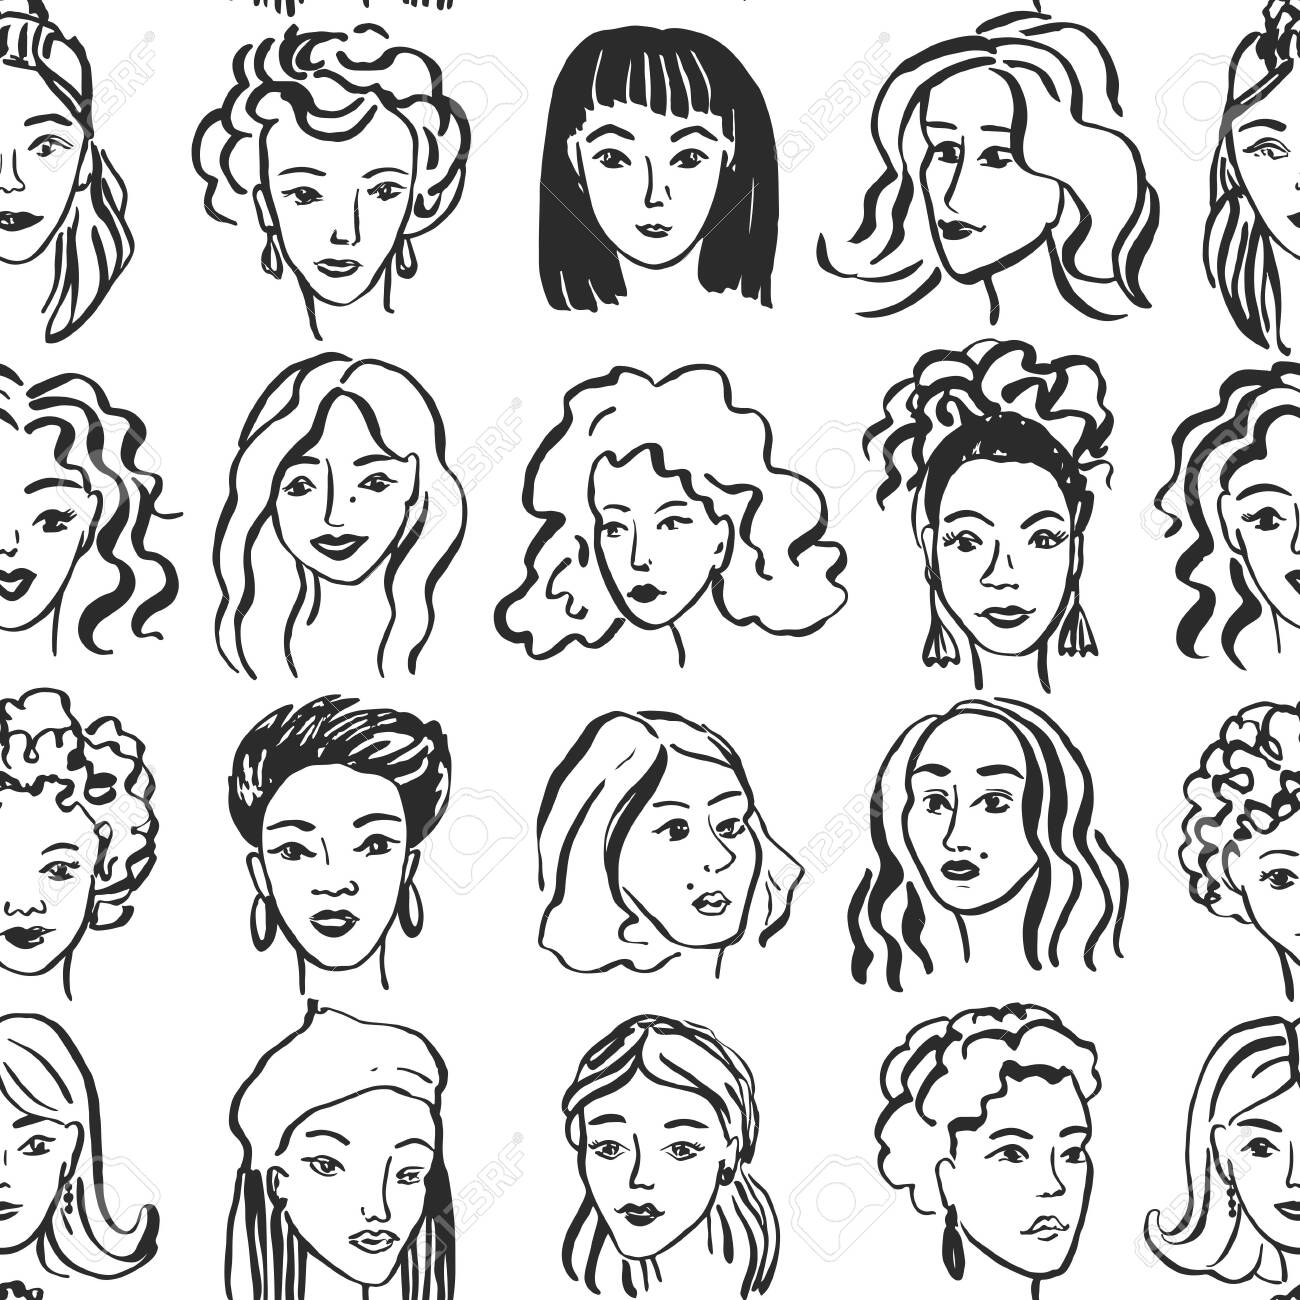 Hand drawn face pattern. Trendy woman face seamless texture with abstract line shapes, minimal girl face. Vector stylized design pattern - 145775835